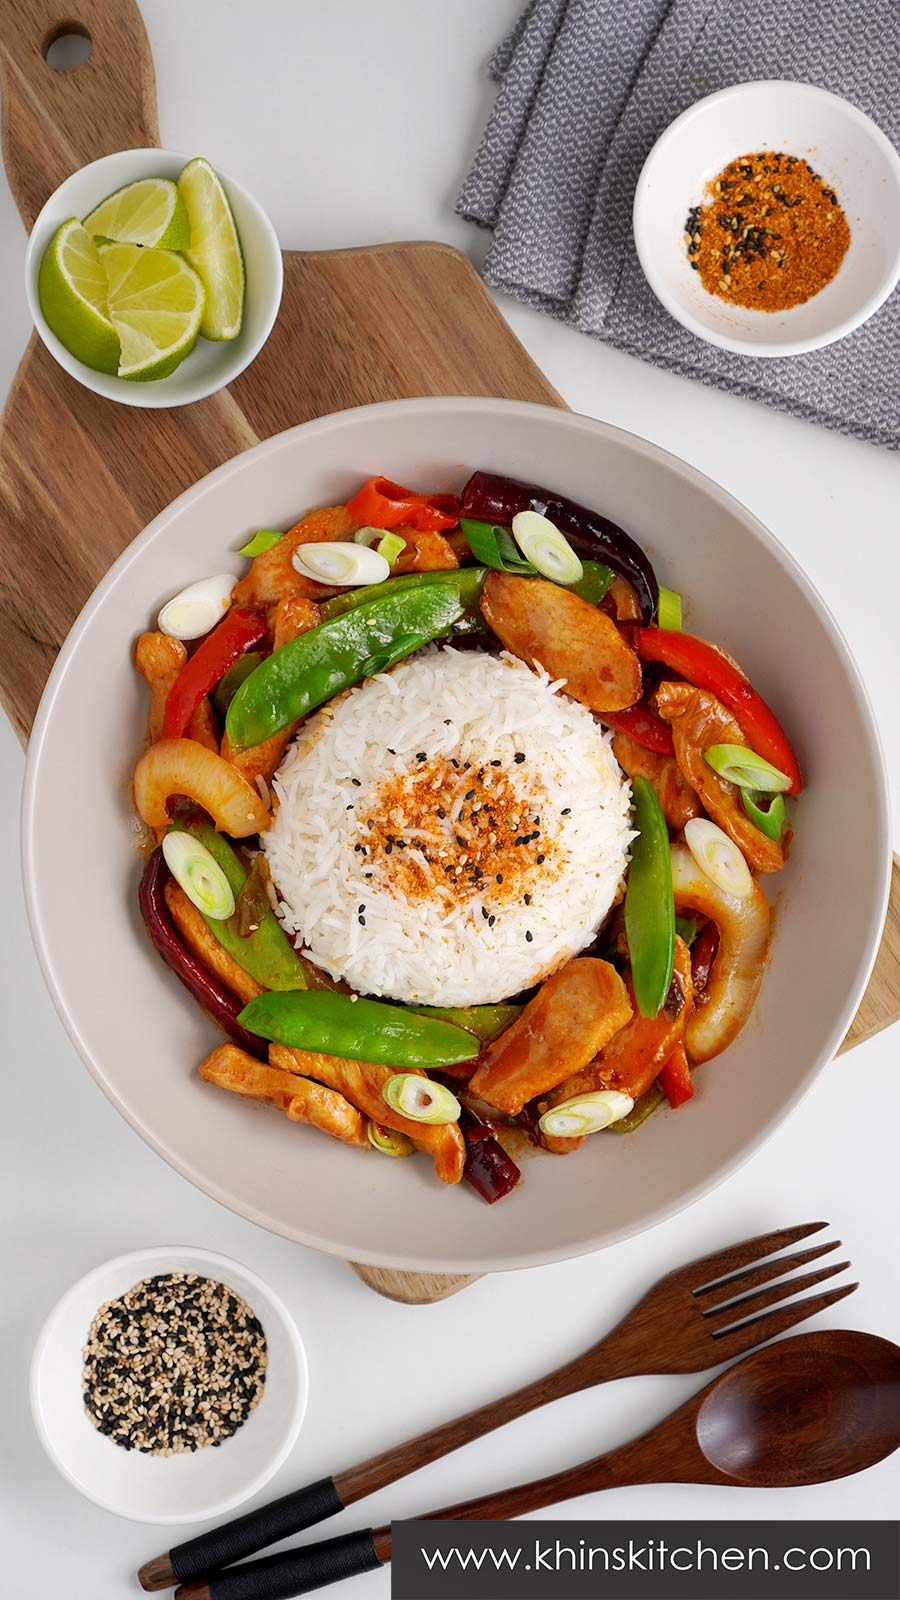 Wagamama inspired chicken stir fry